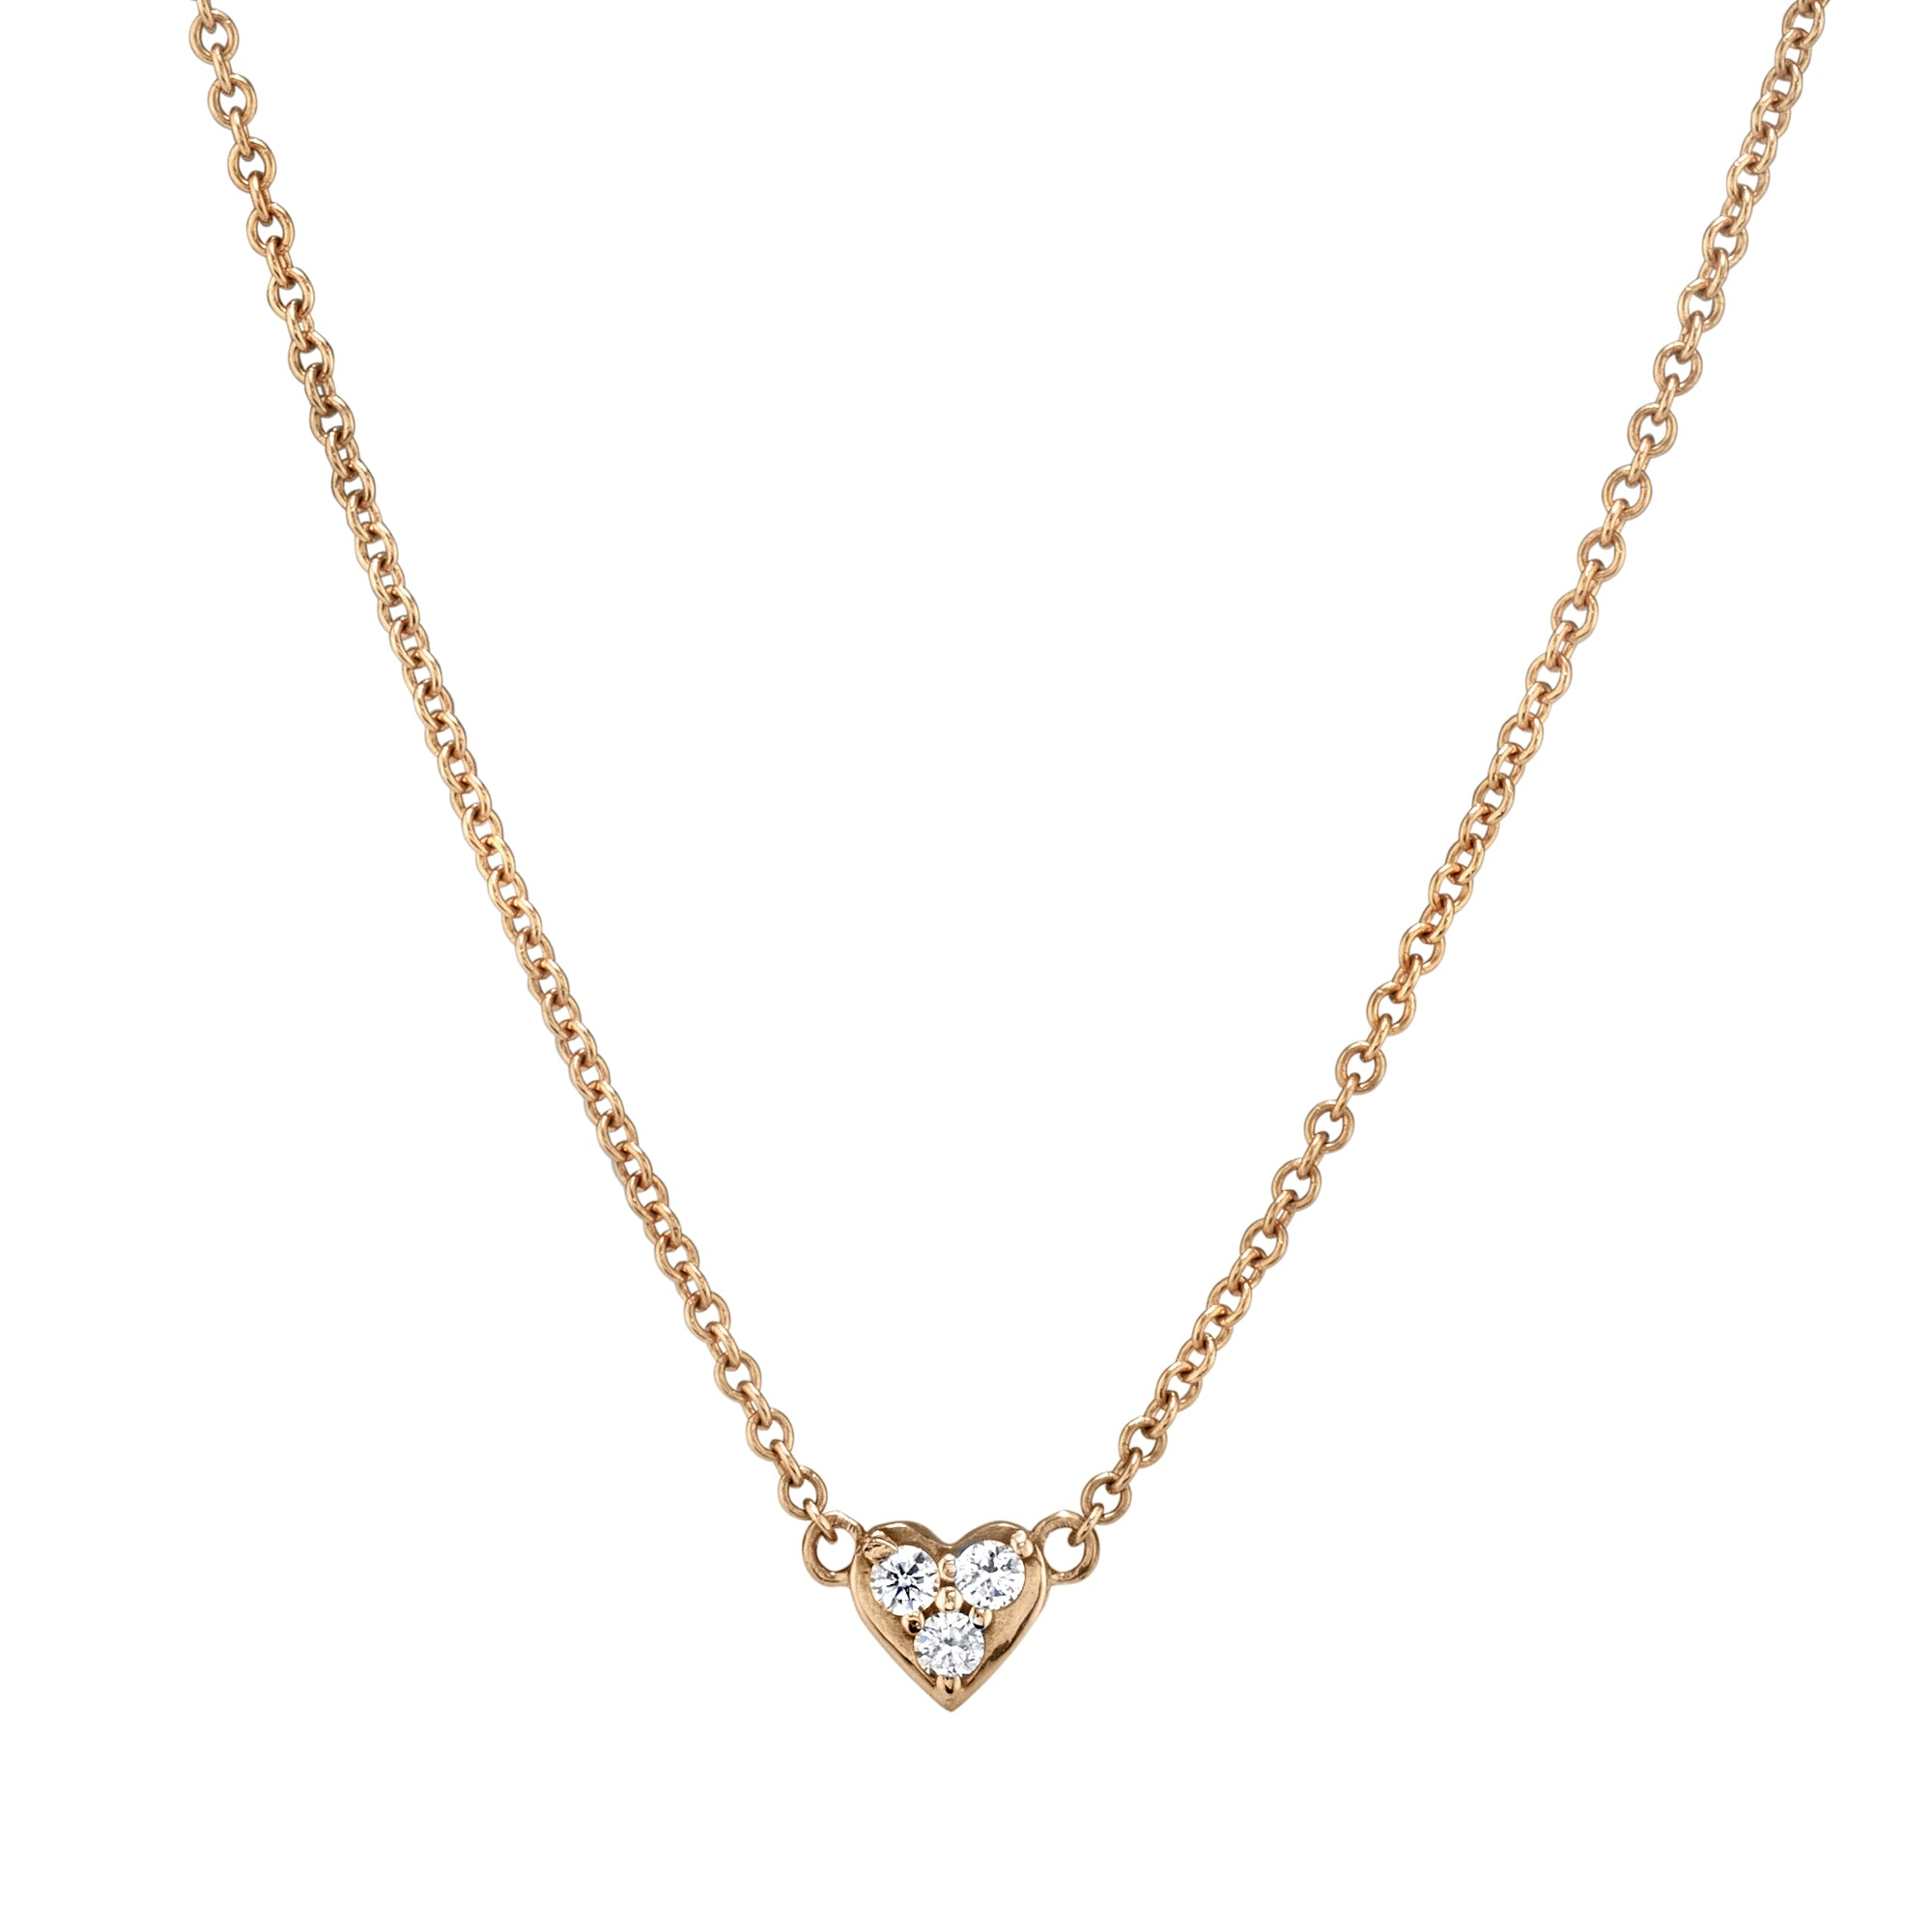 Baby Tri-Diamond Heart Necklace by Shay for Broken English Jewelry